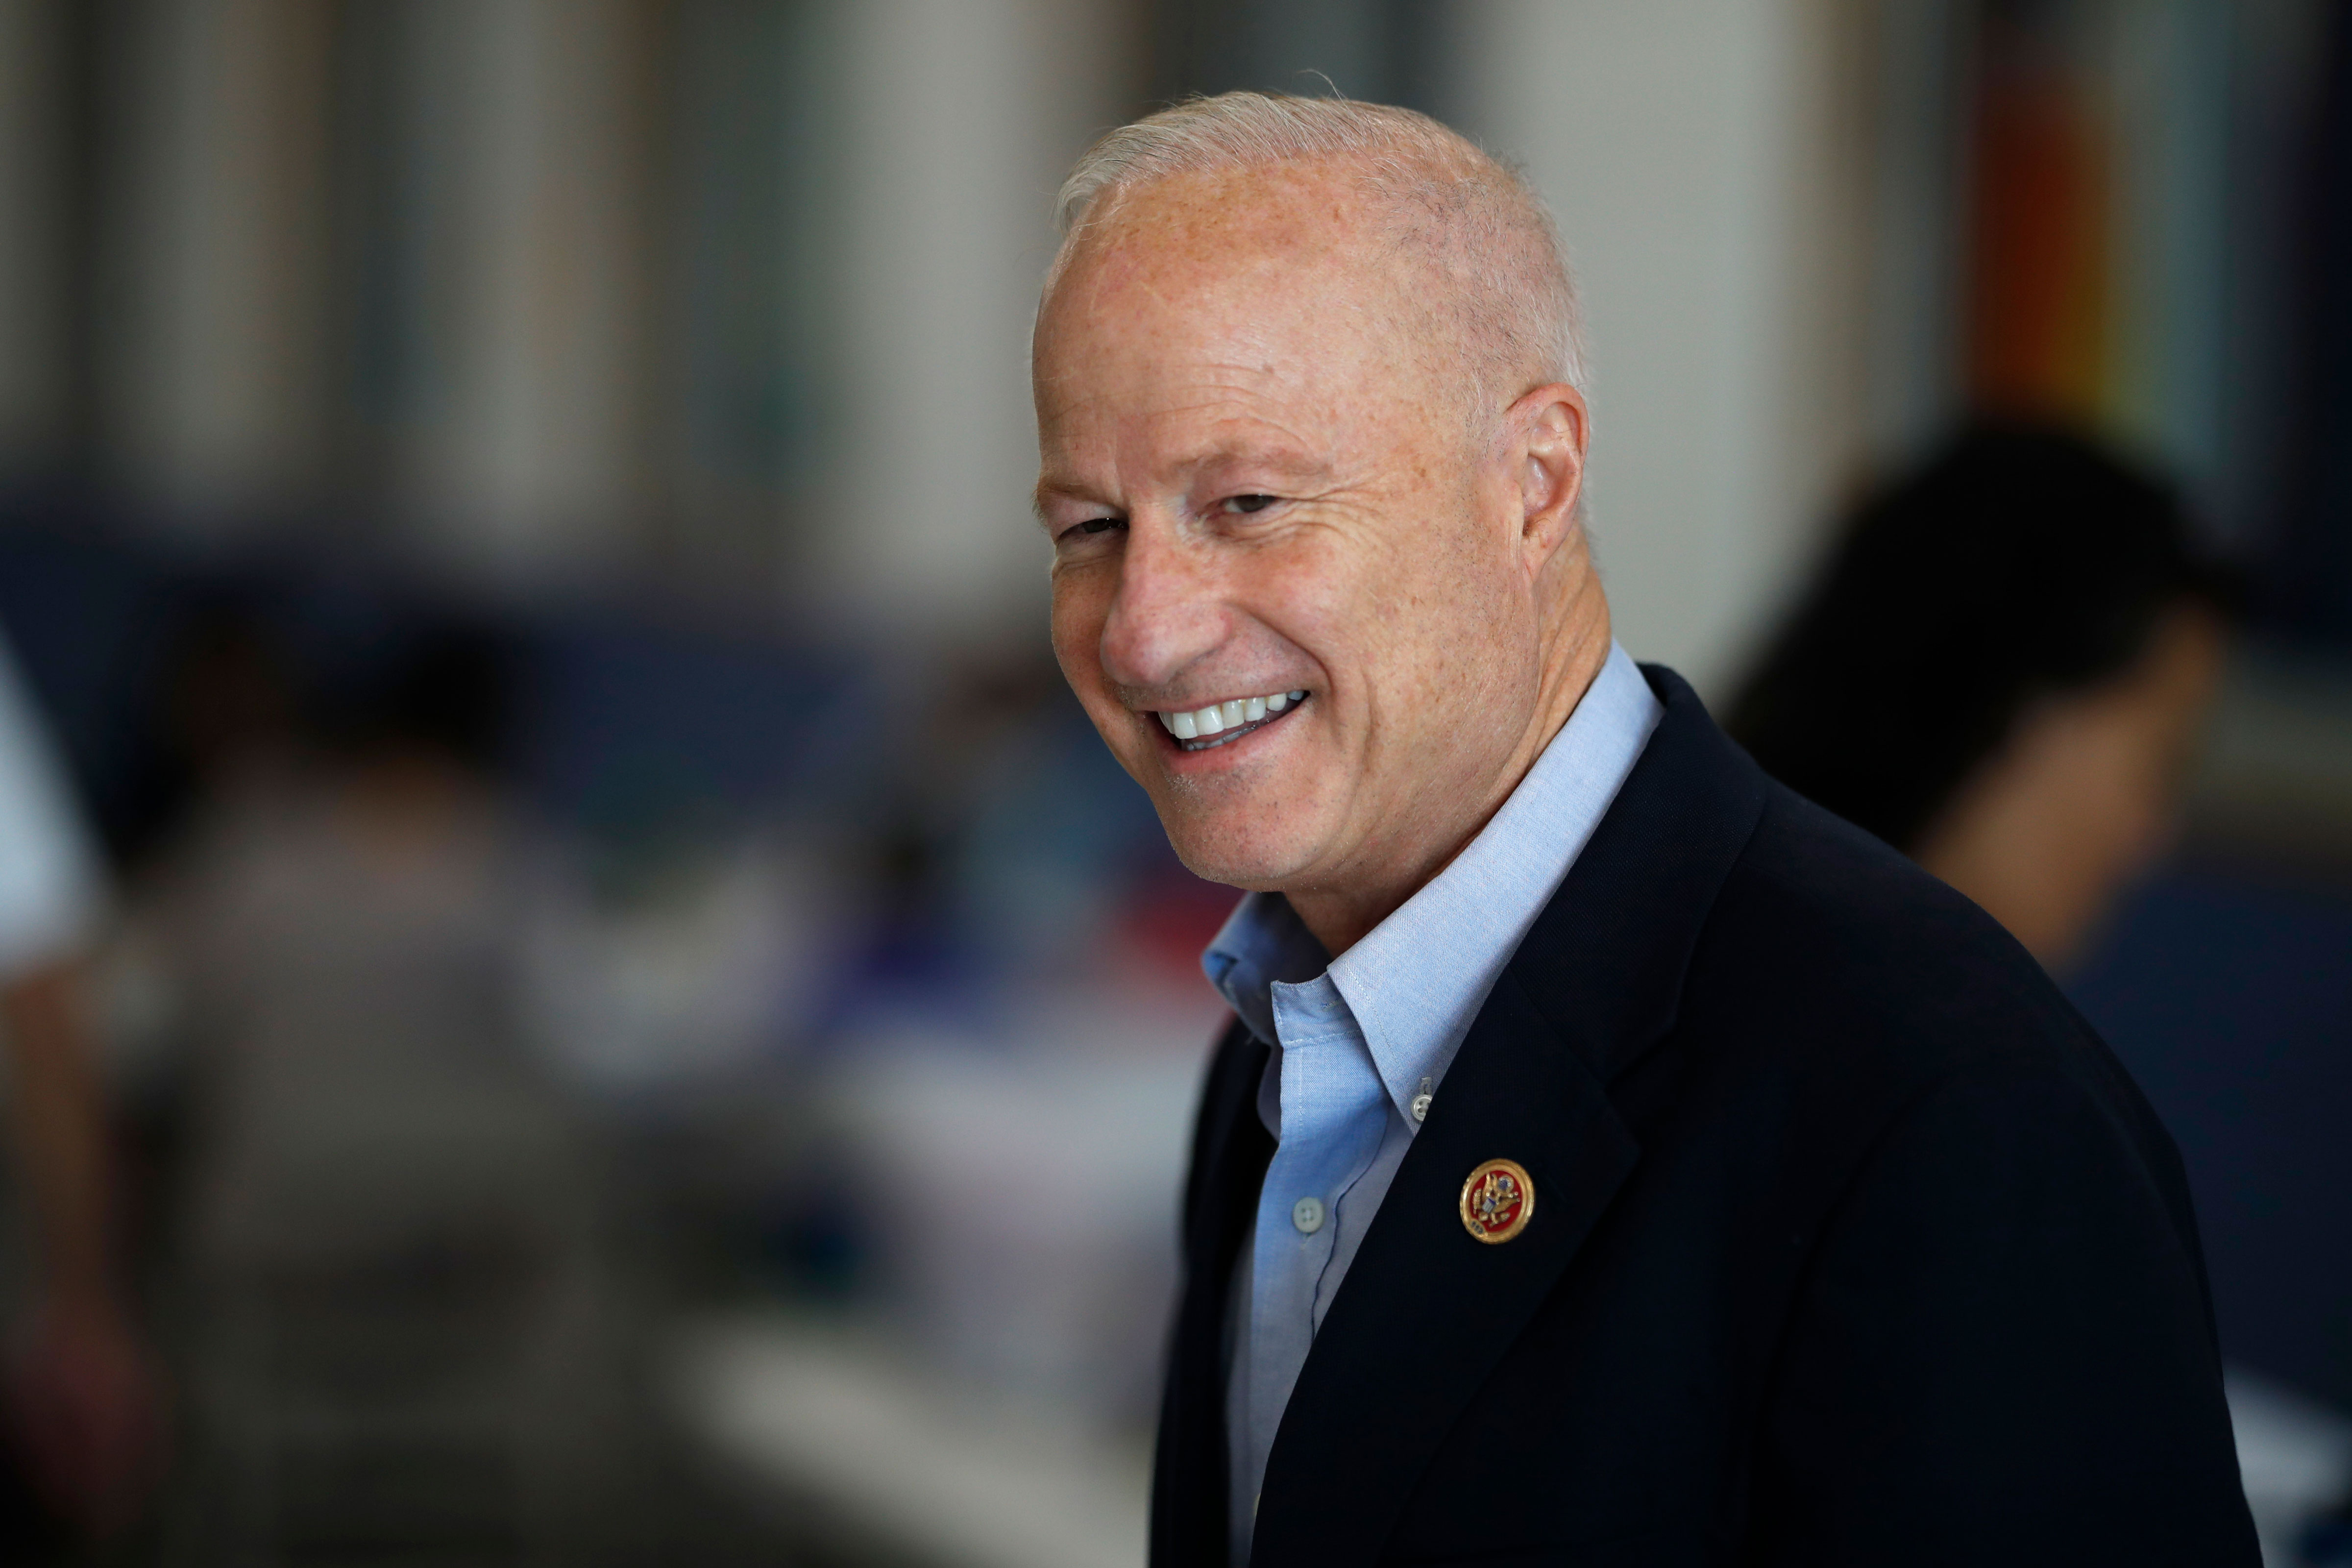 <p>U.S. Rep. Mike Coffman, R-Colo., who represents Congressional District 6, greets voters at the Great Wall Chinese Academy, a school that teaches Mandarin language and Chinese culture Sunday, Oct. 21, 2018.</p>